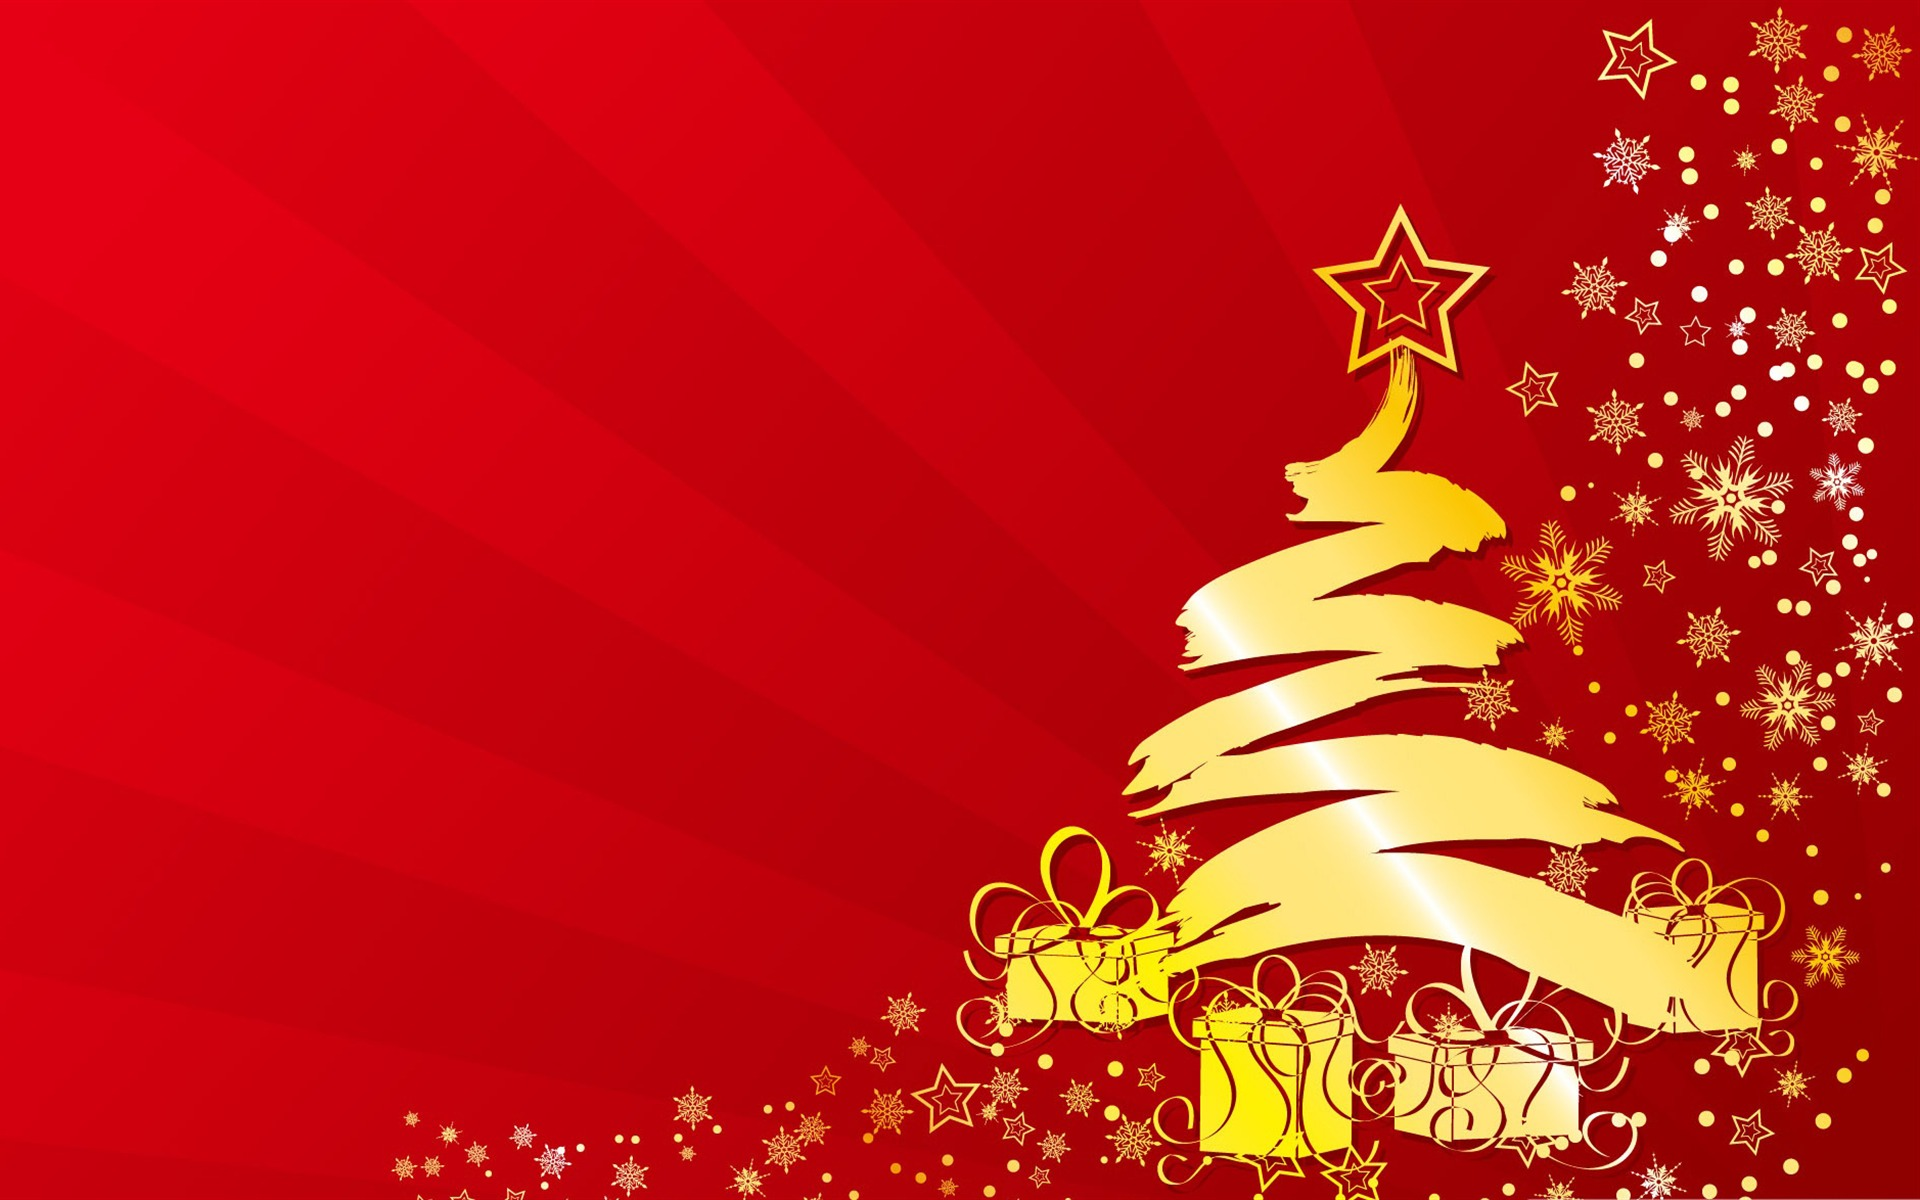 Christmas tree Illustration Desktop Picture Wallpaper 1920x1200